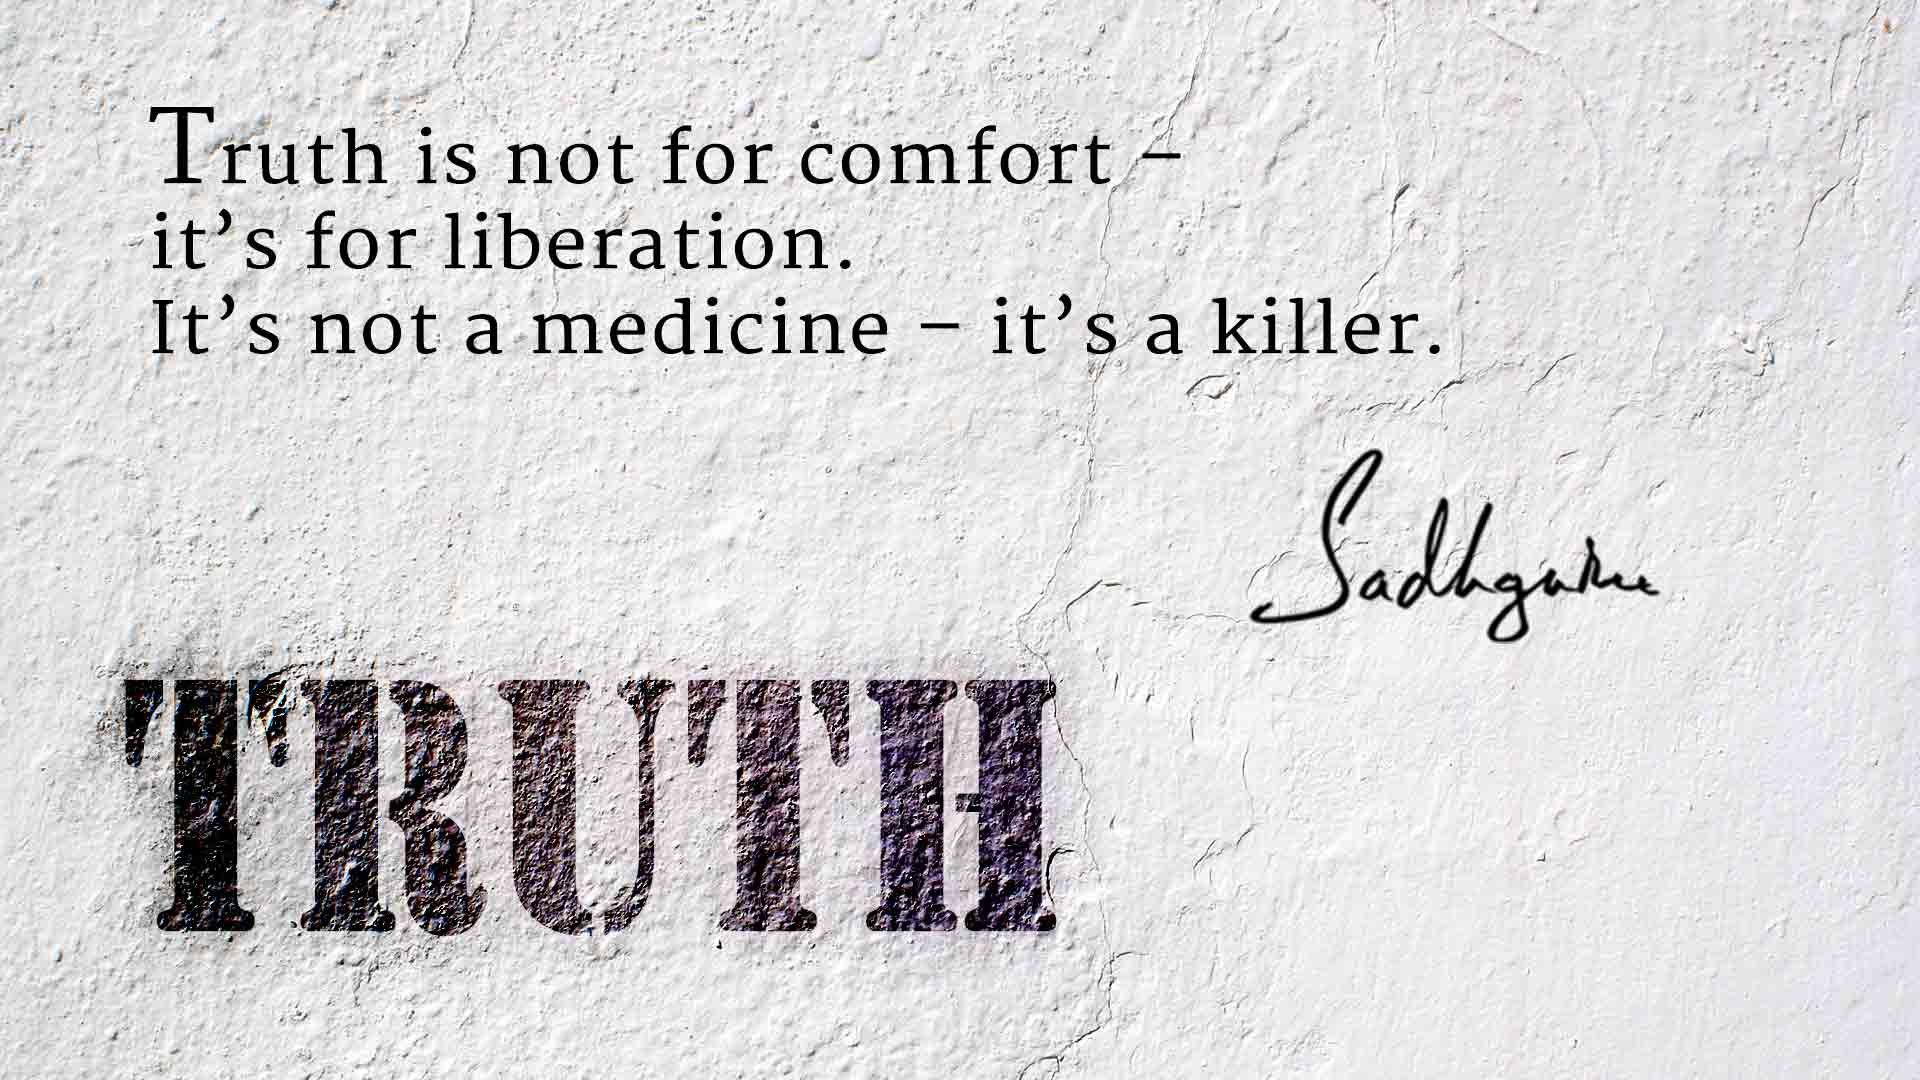 5 Truth Quotes From Sadhguru